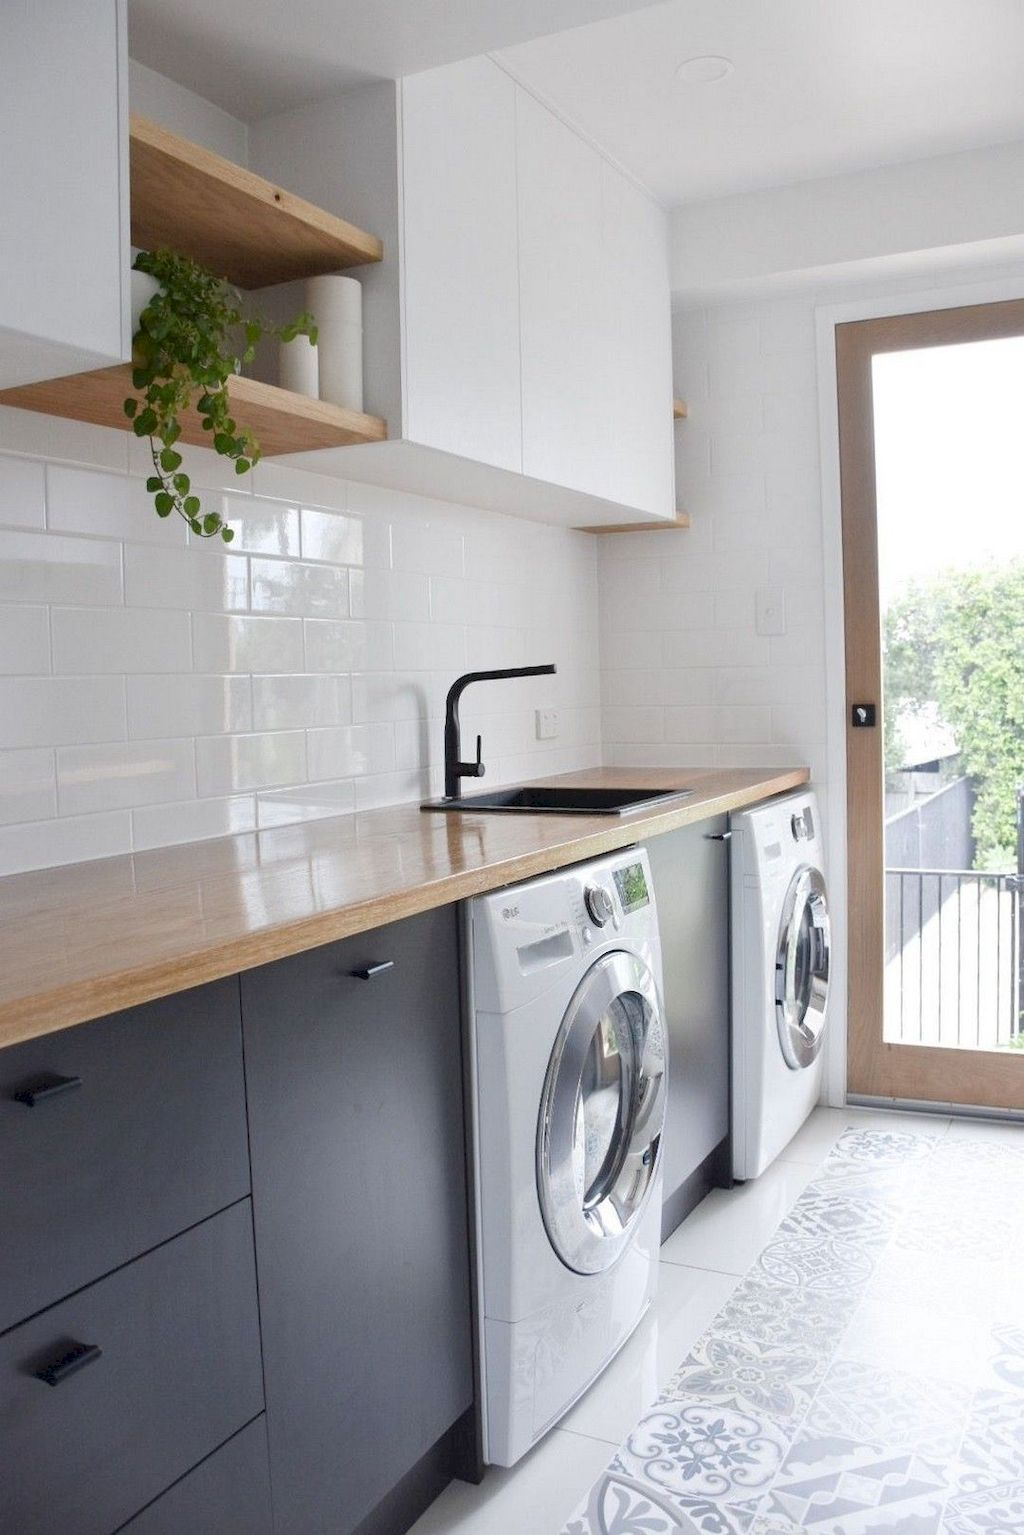 Fascinating Condense the Mess within the Laundry Room With These Suggestions images